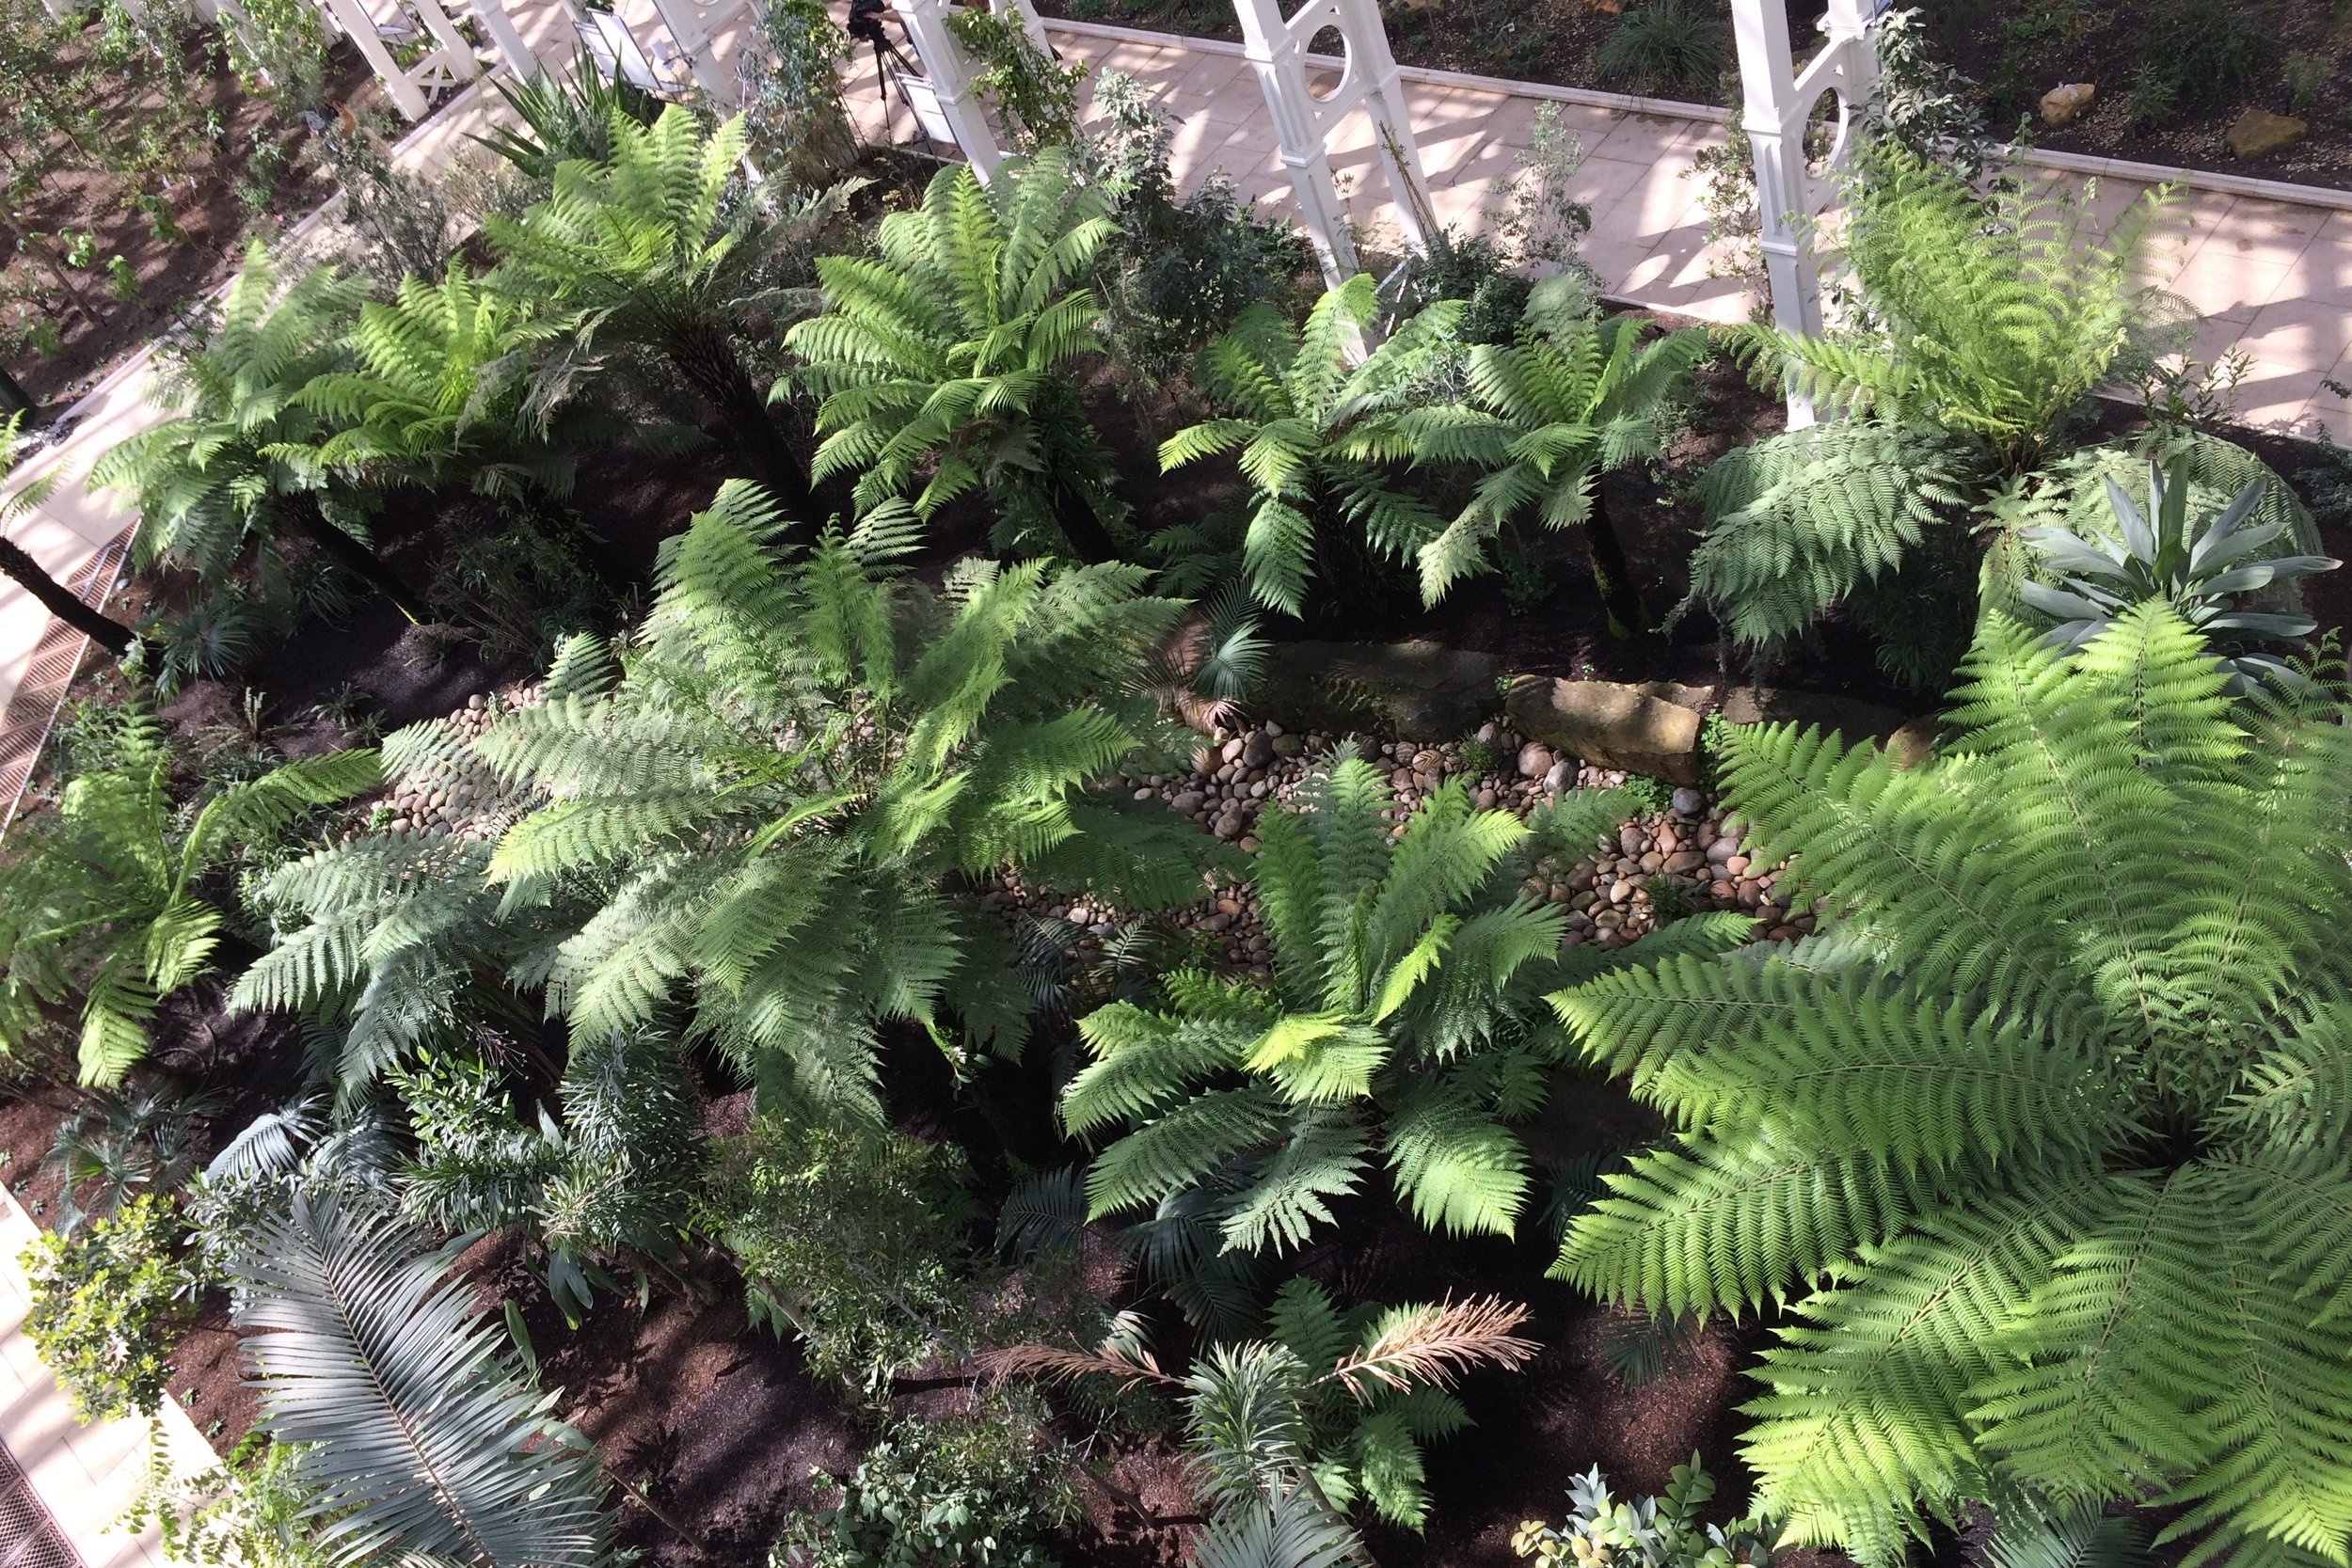 The tree fern gully in the Temperate House at Kew viewed from the walkway above.